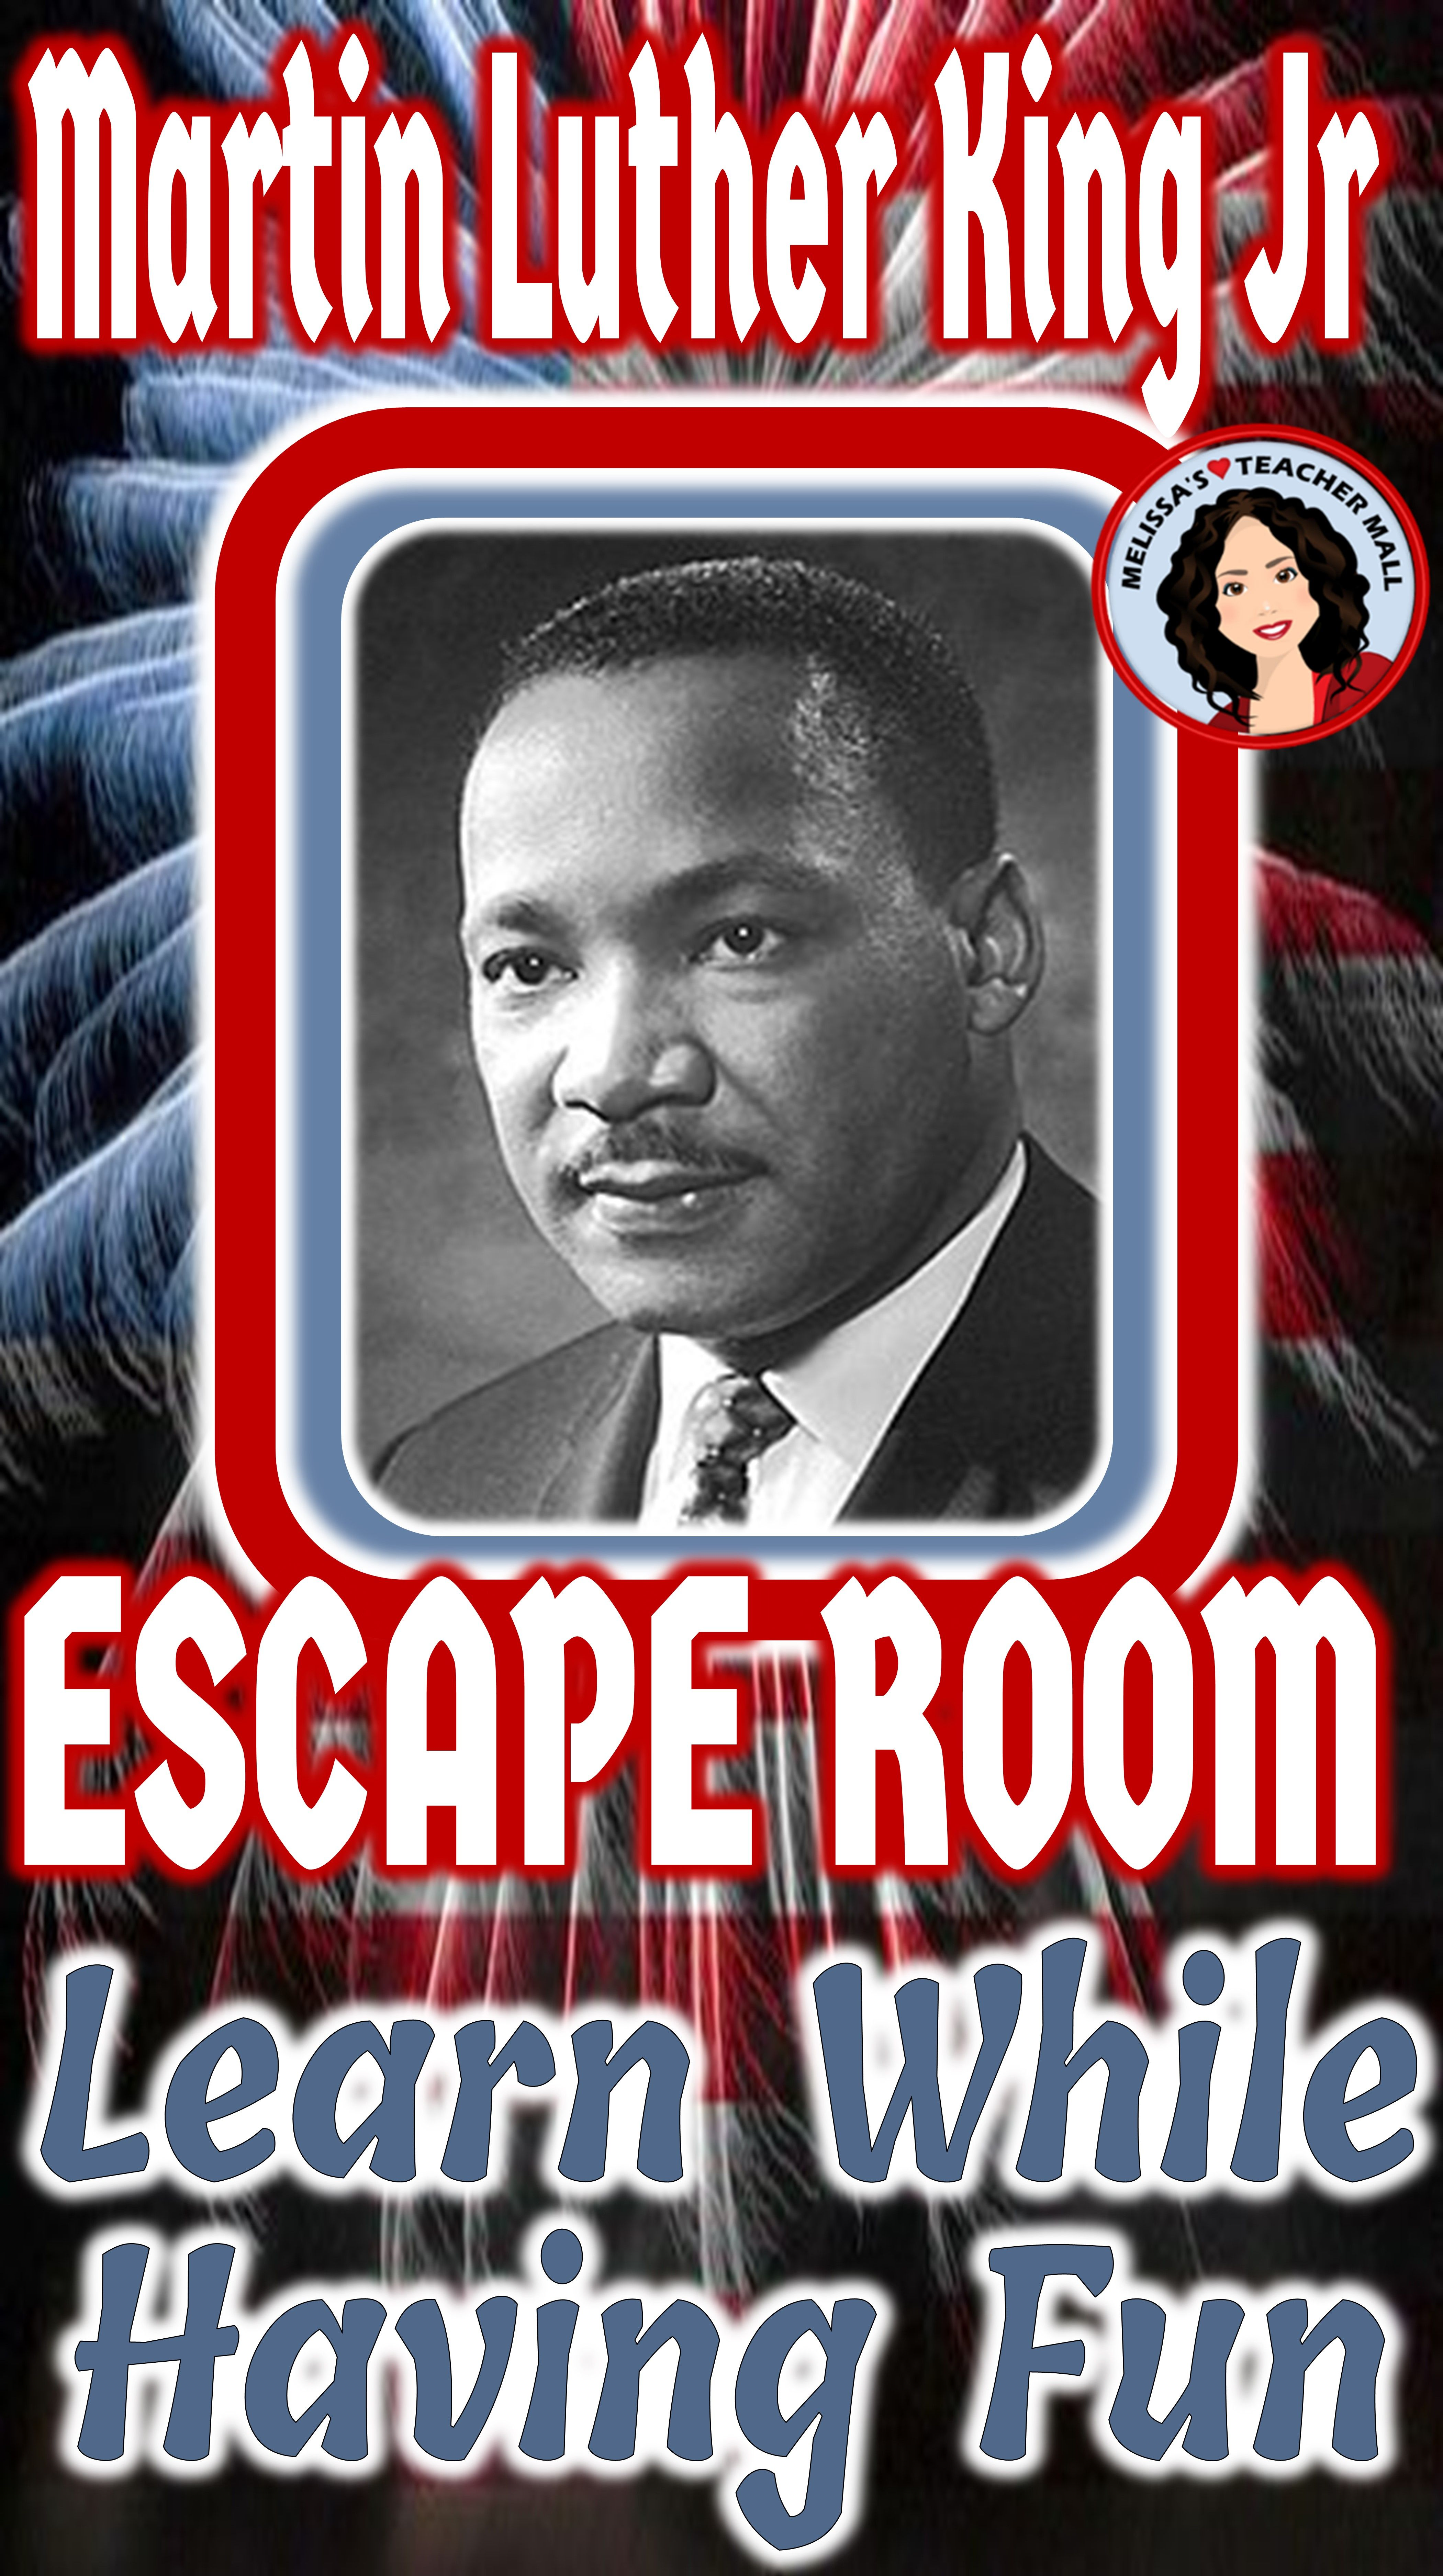 Black History Month Escape Room Martin Luther King Jr